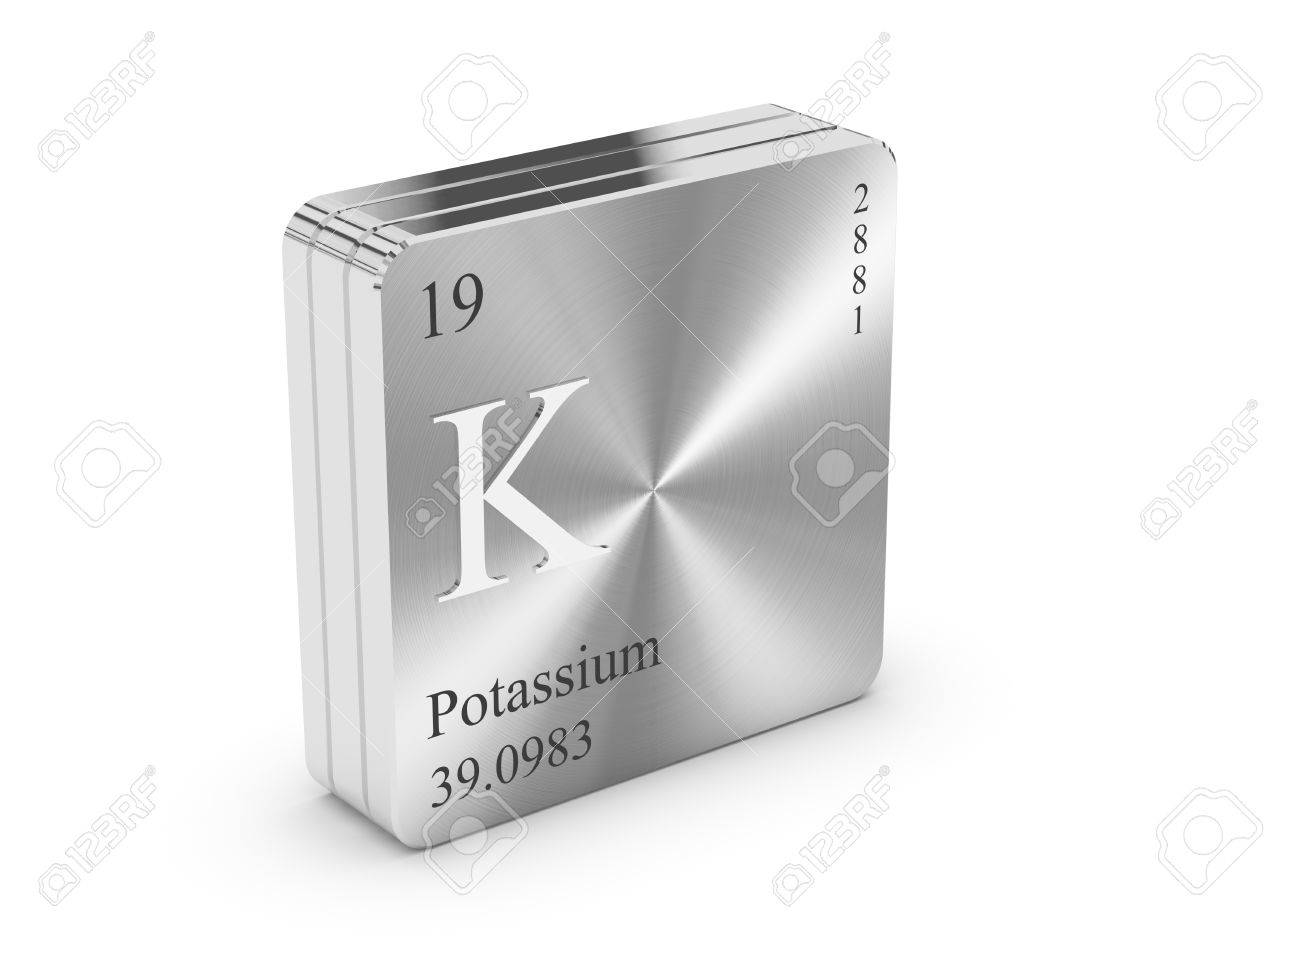 Periodic table of elements silver images periodic table images silver periodic table gallery periodic table images potassium element of the periodic table on metal steel gamestrikefo Choice Image